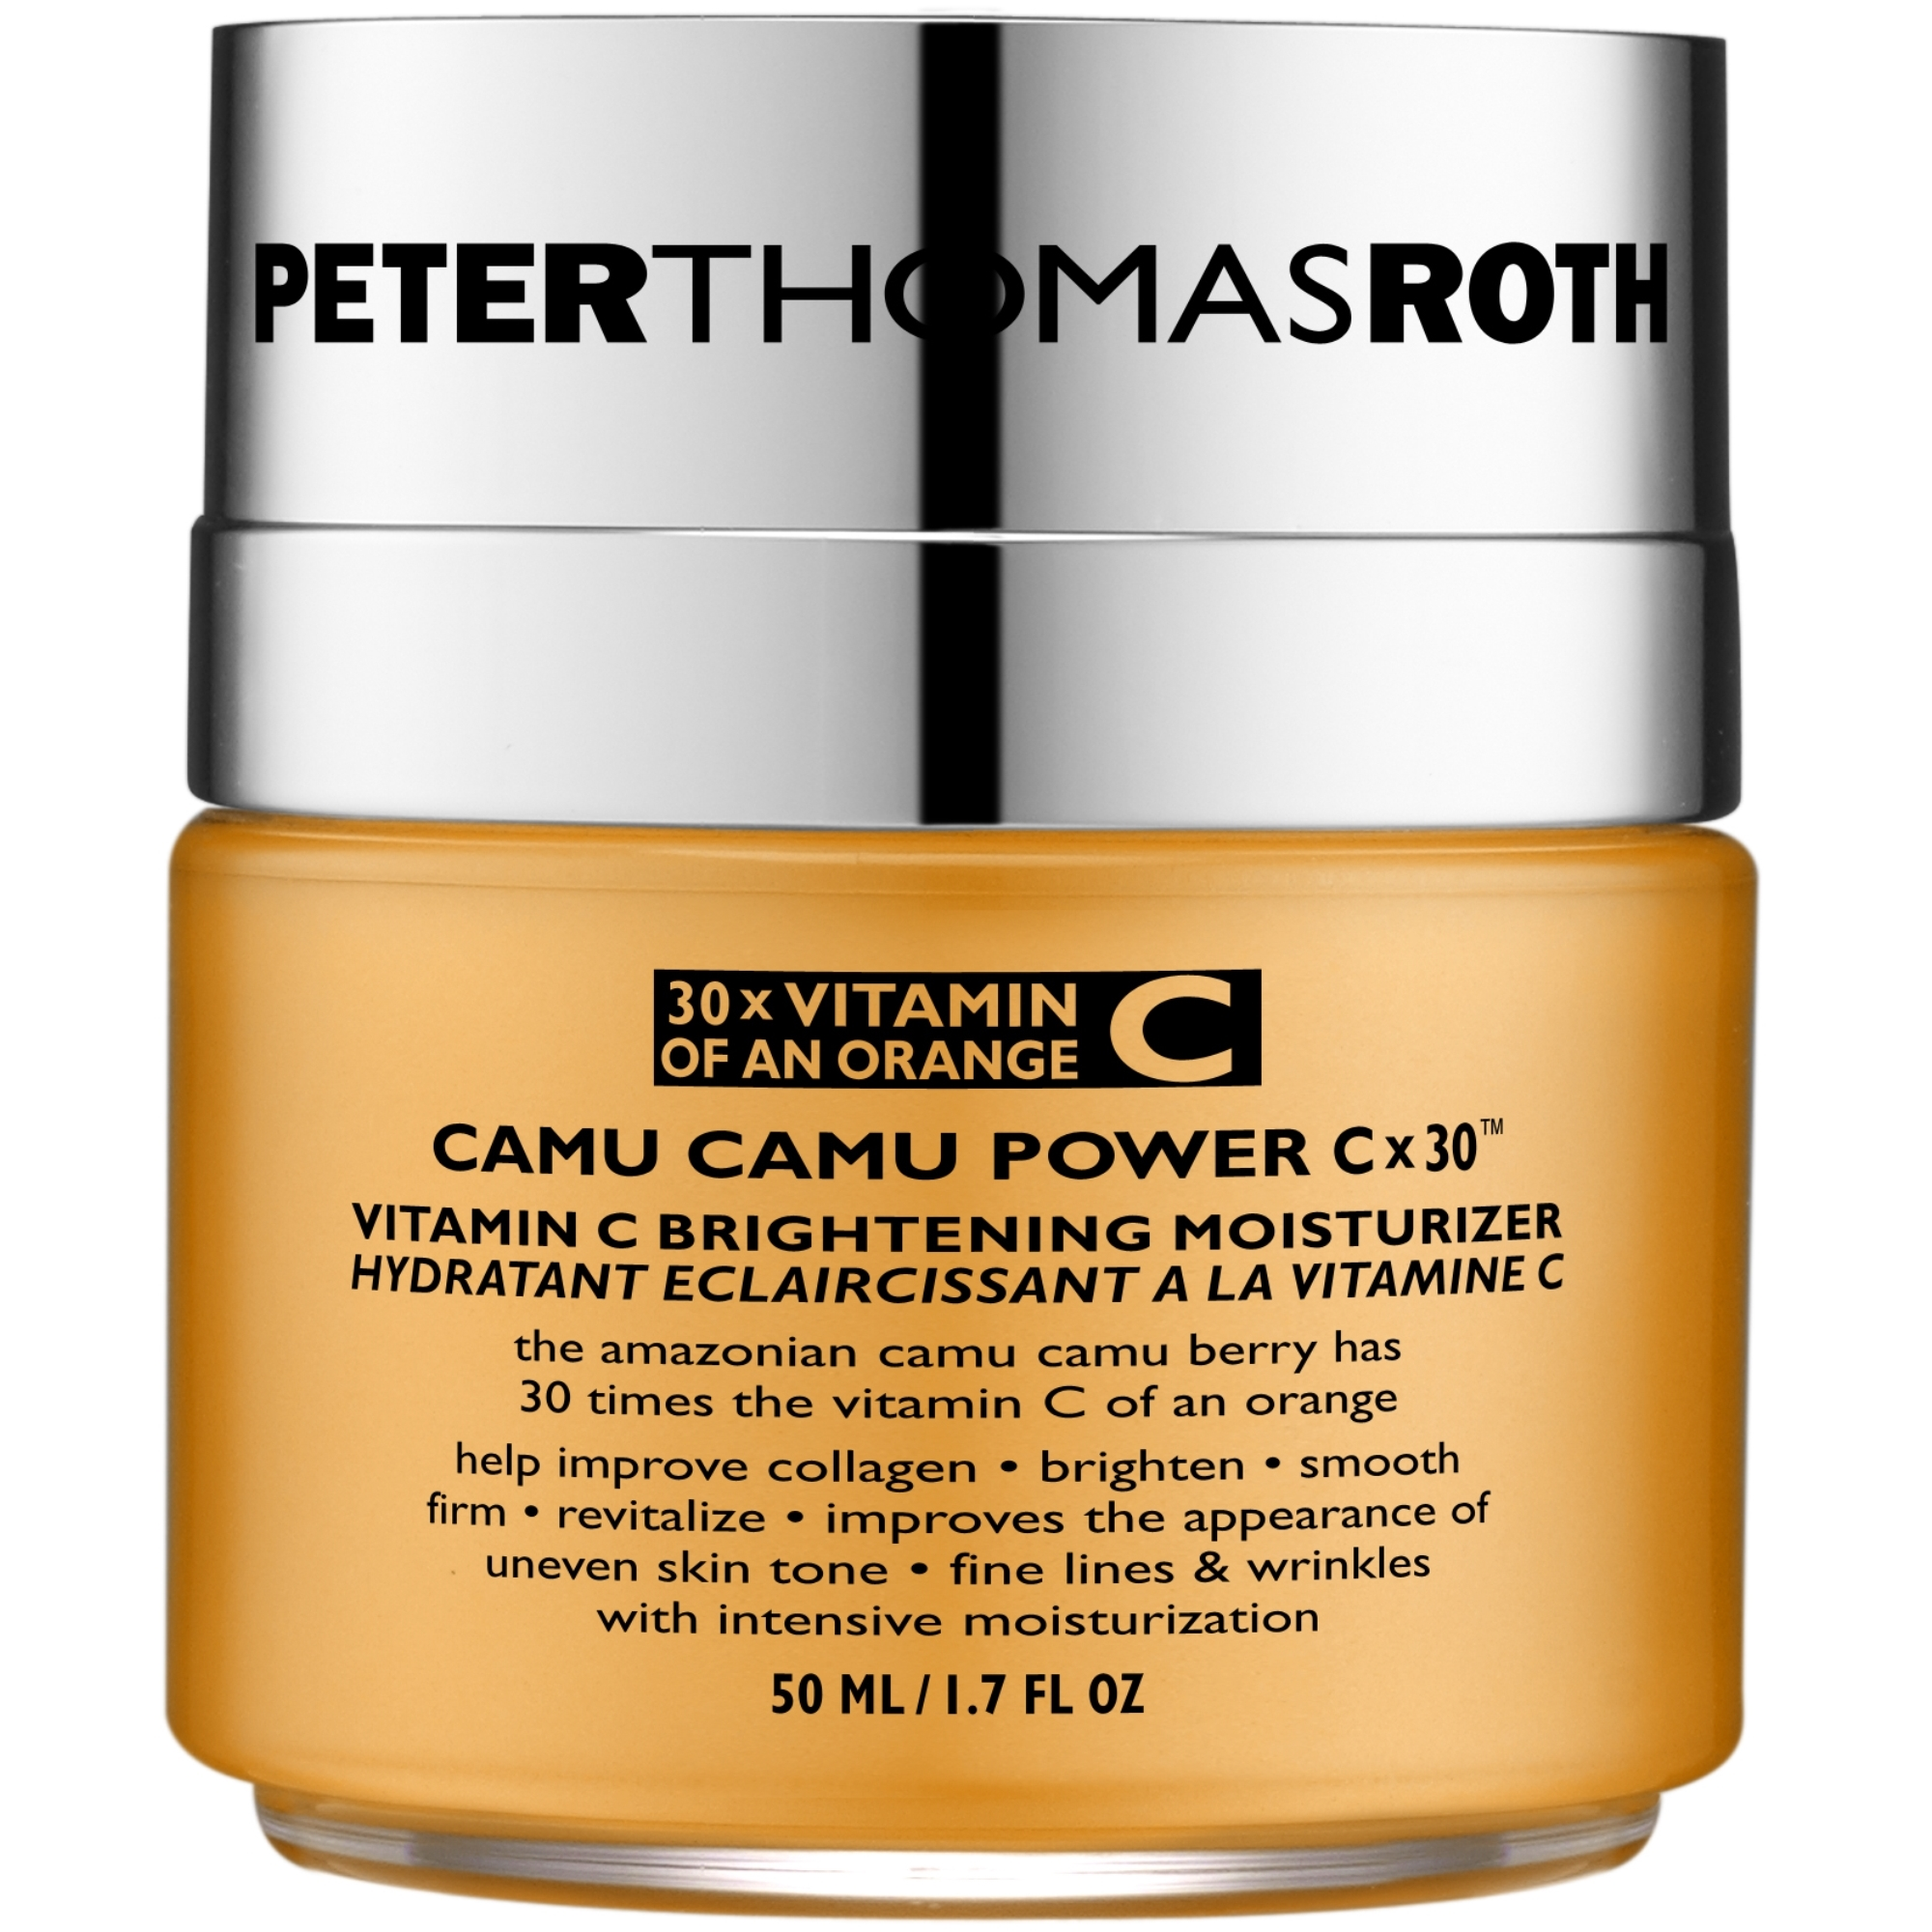 Camu Camu Power Cx30 Vitamin C  Brightening Moisturizer